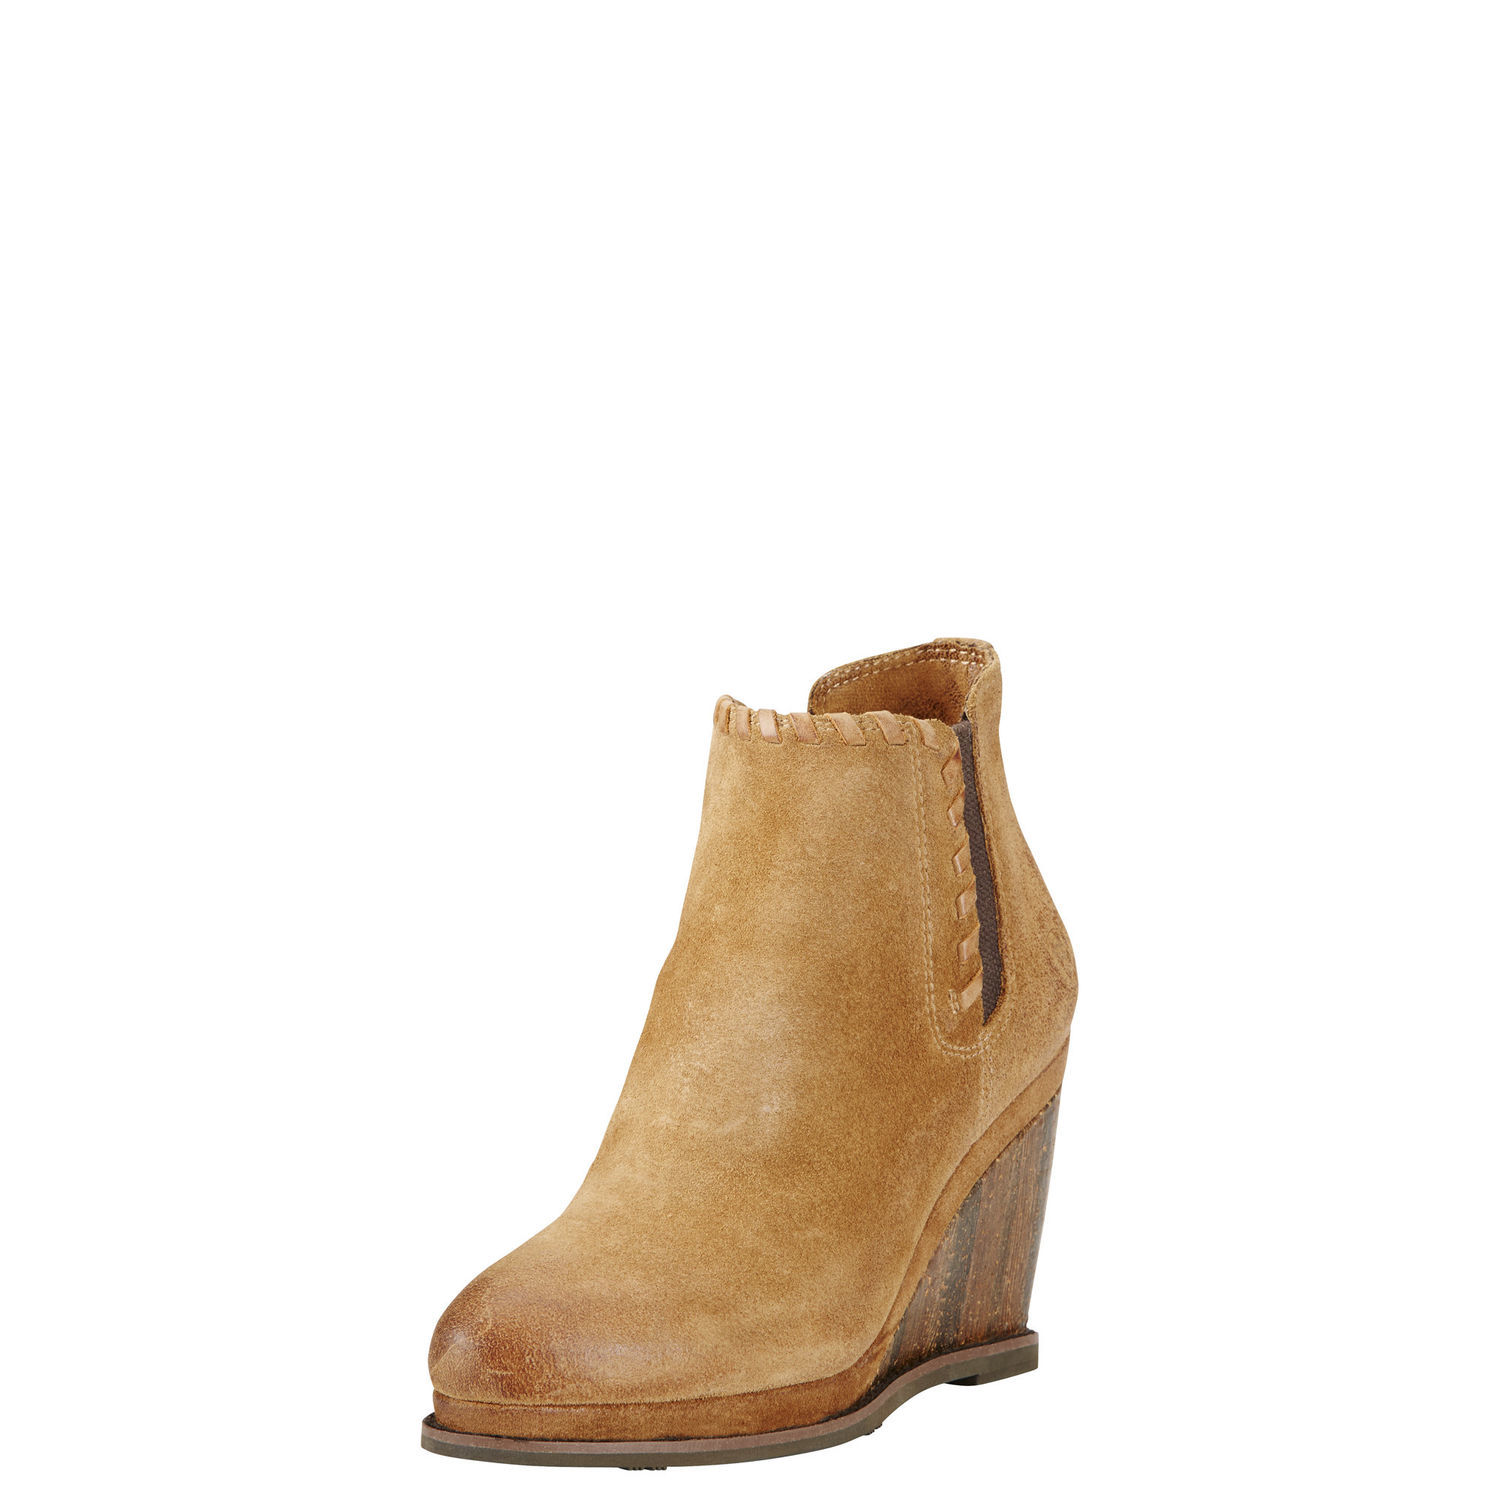 Ariat Belle Round Toe Leather Ankle Boot by Ariat